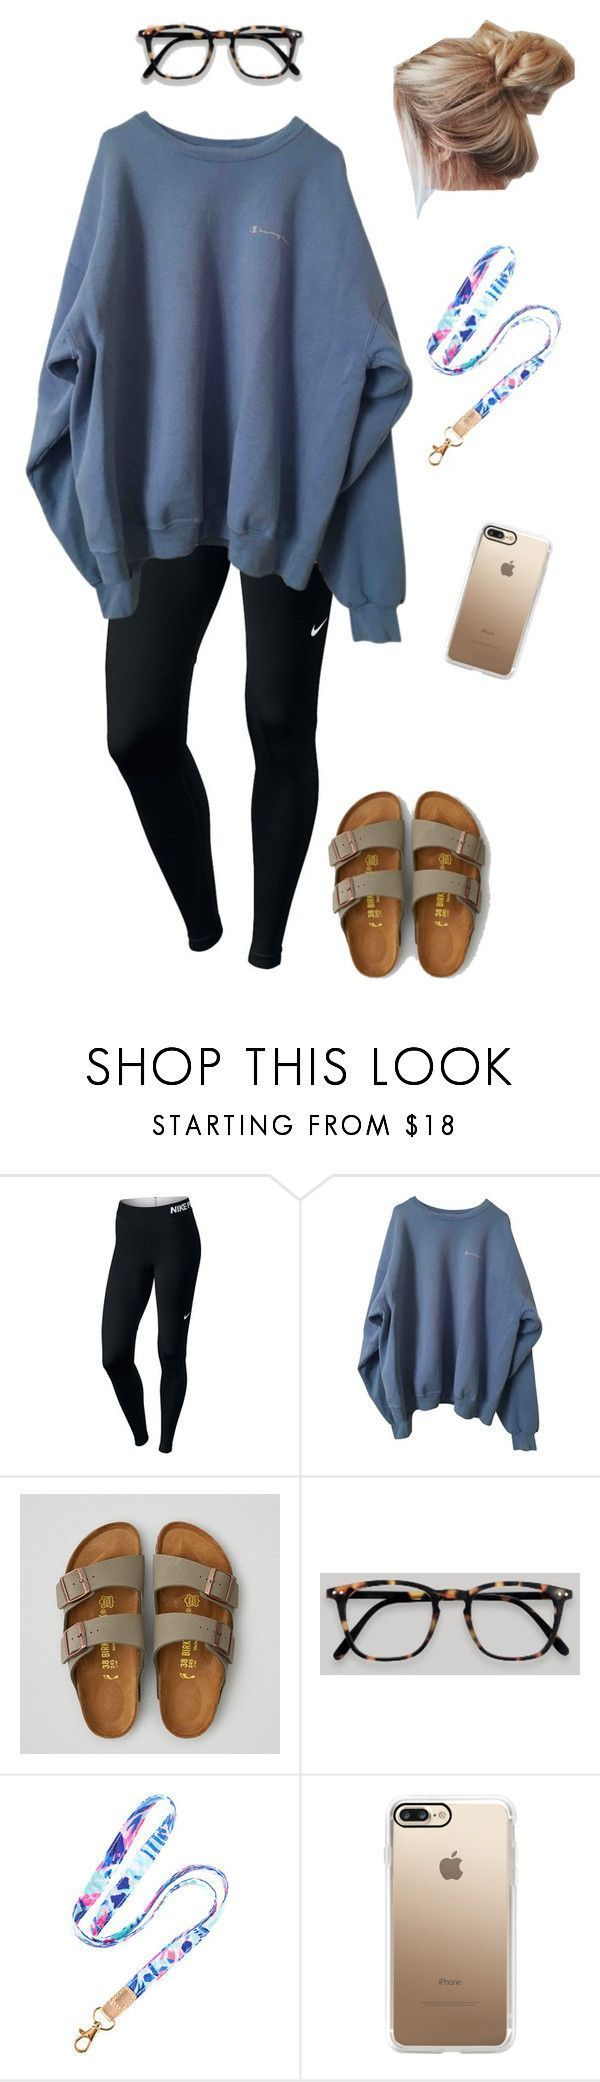 """road trip today!!!!"" by jsteely-1 on Polyvore featuring NIKE, American Eagle Outfitters, Lilly Pulitzer and Casetify #americaneagleoutfitters"